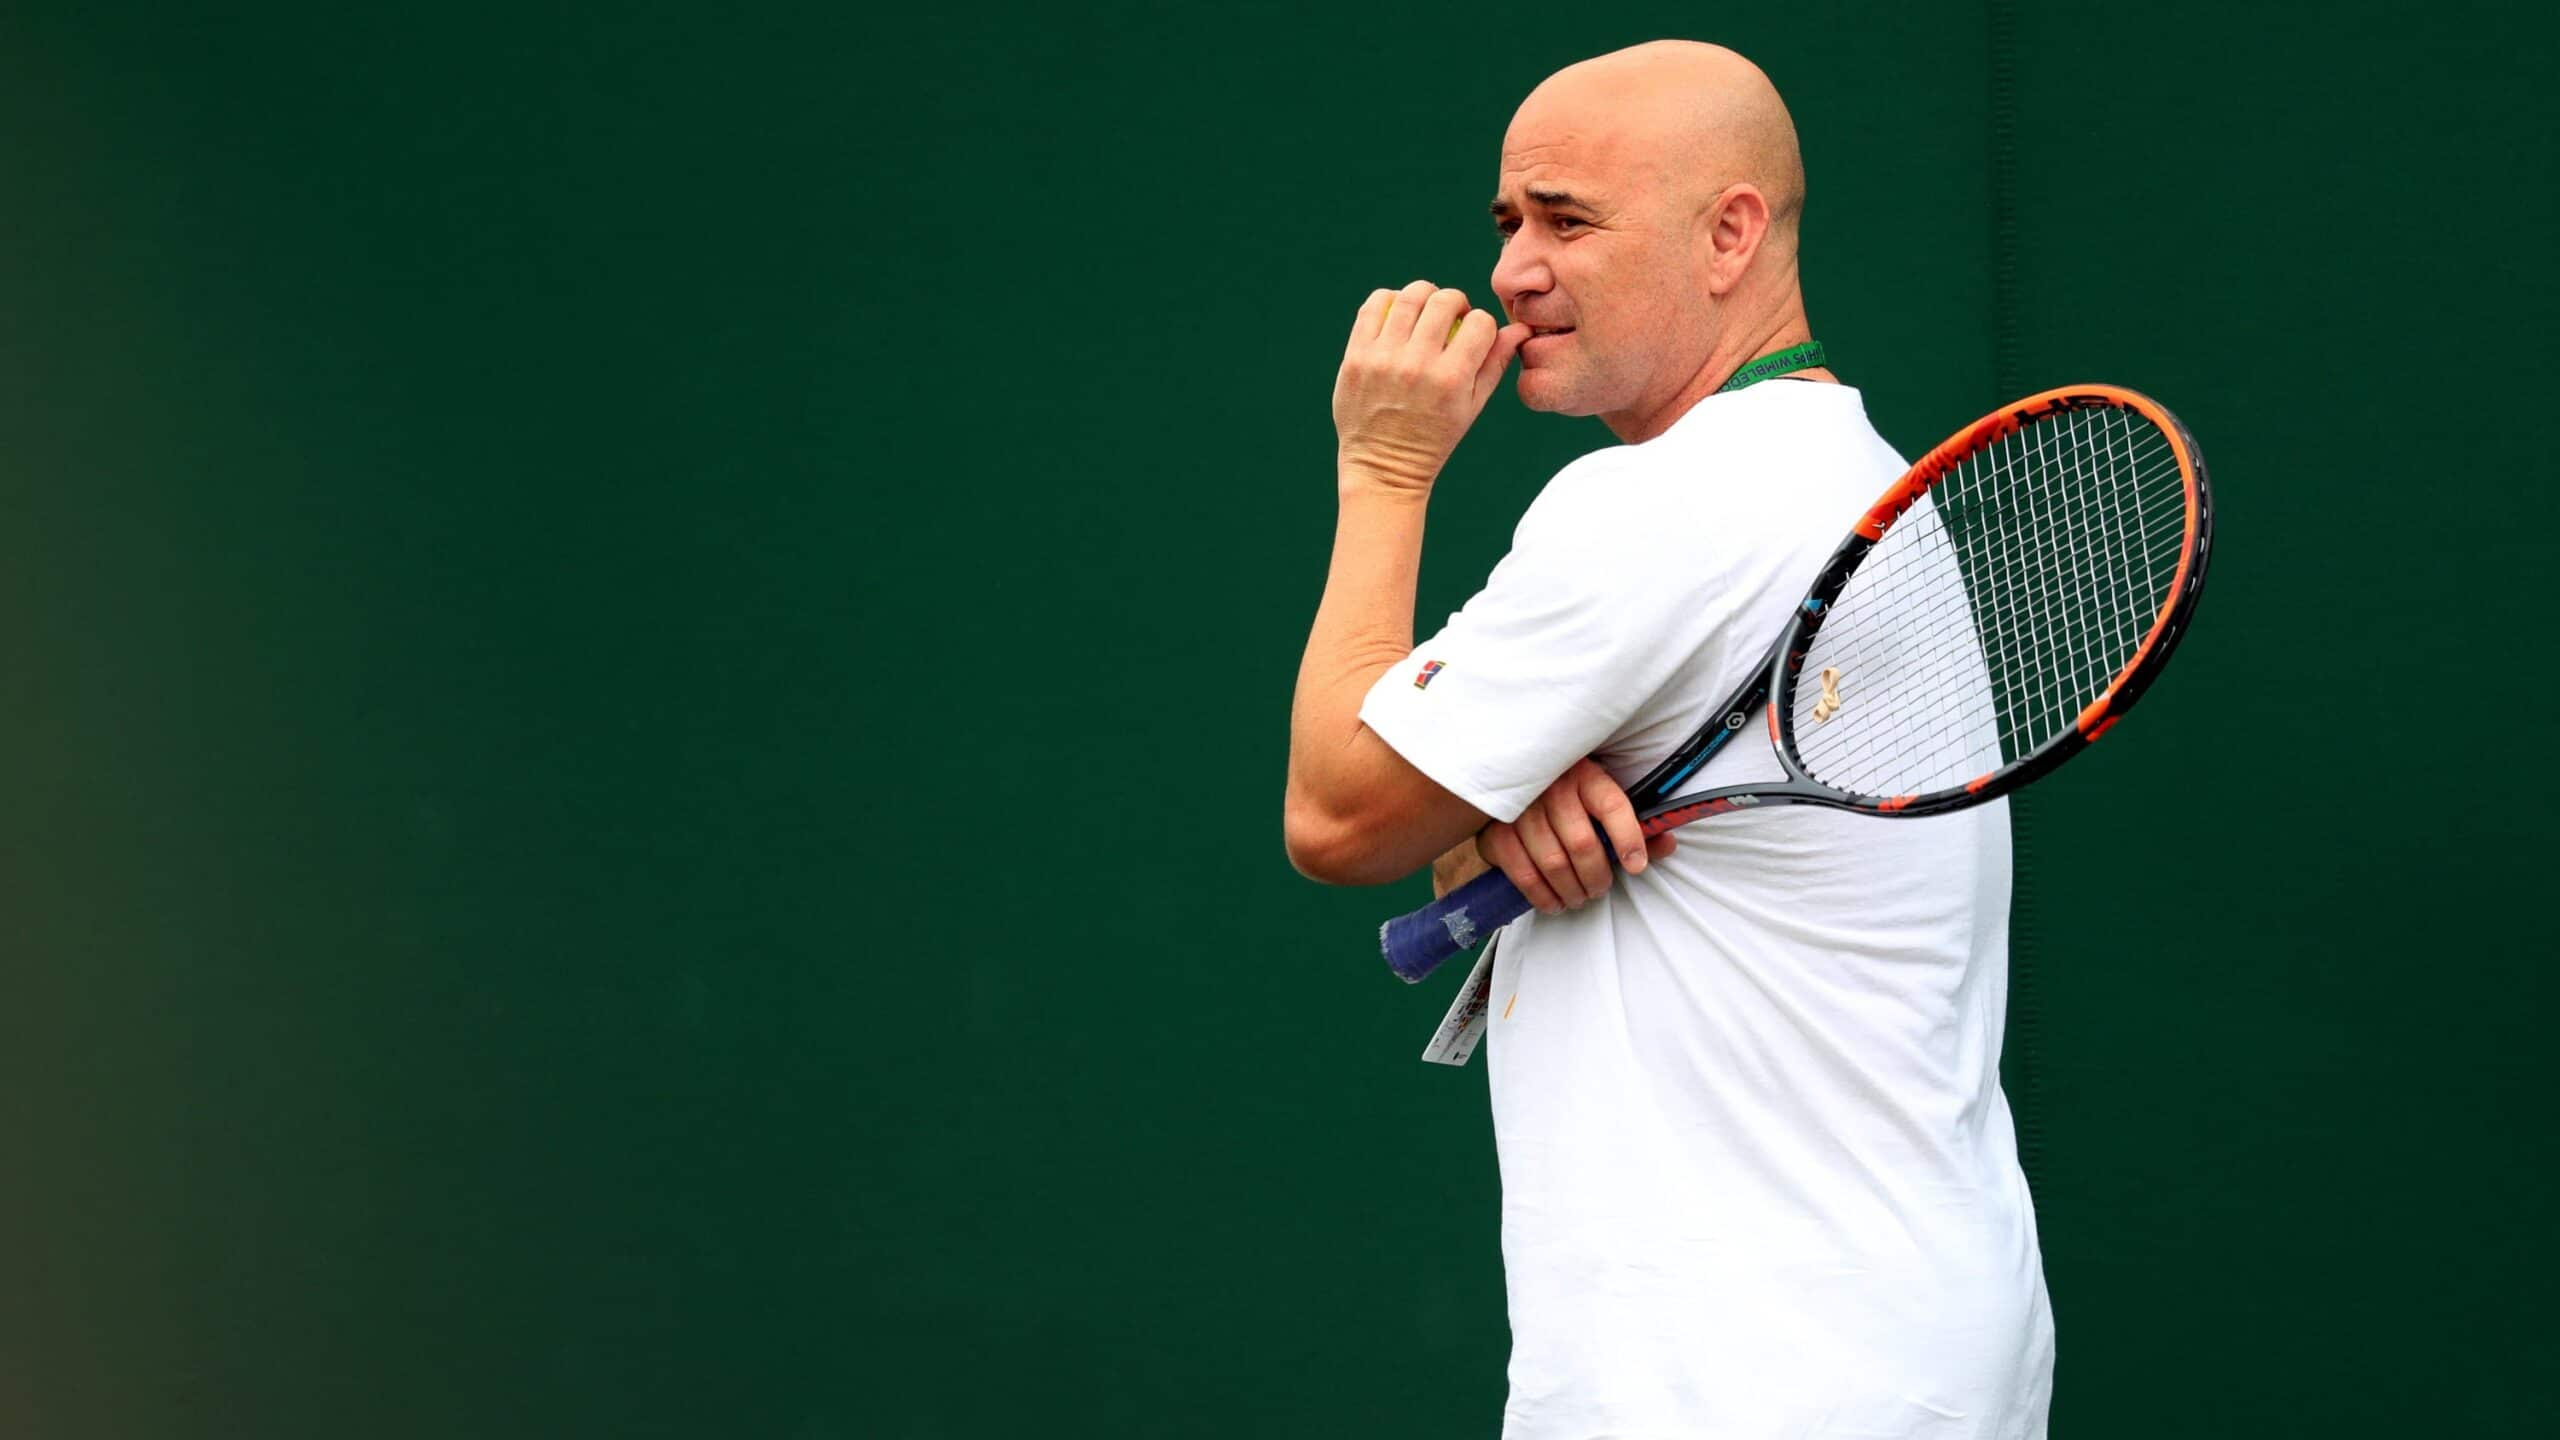 How To Improve Your Tennis?